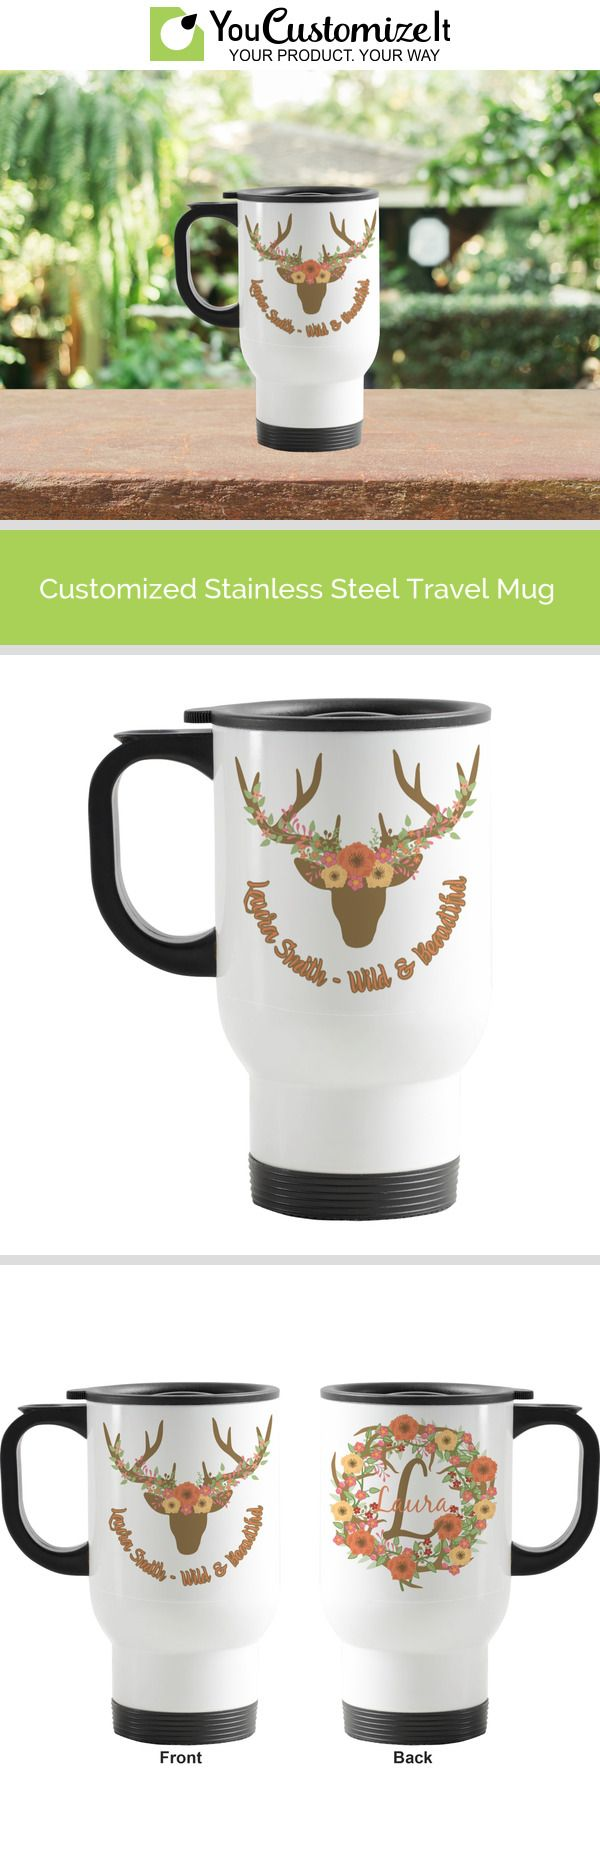 Floral Antler Stainless Steel Travel Mug with Handle in